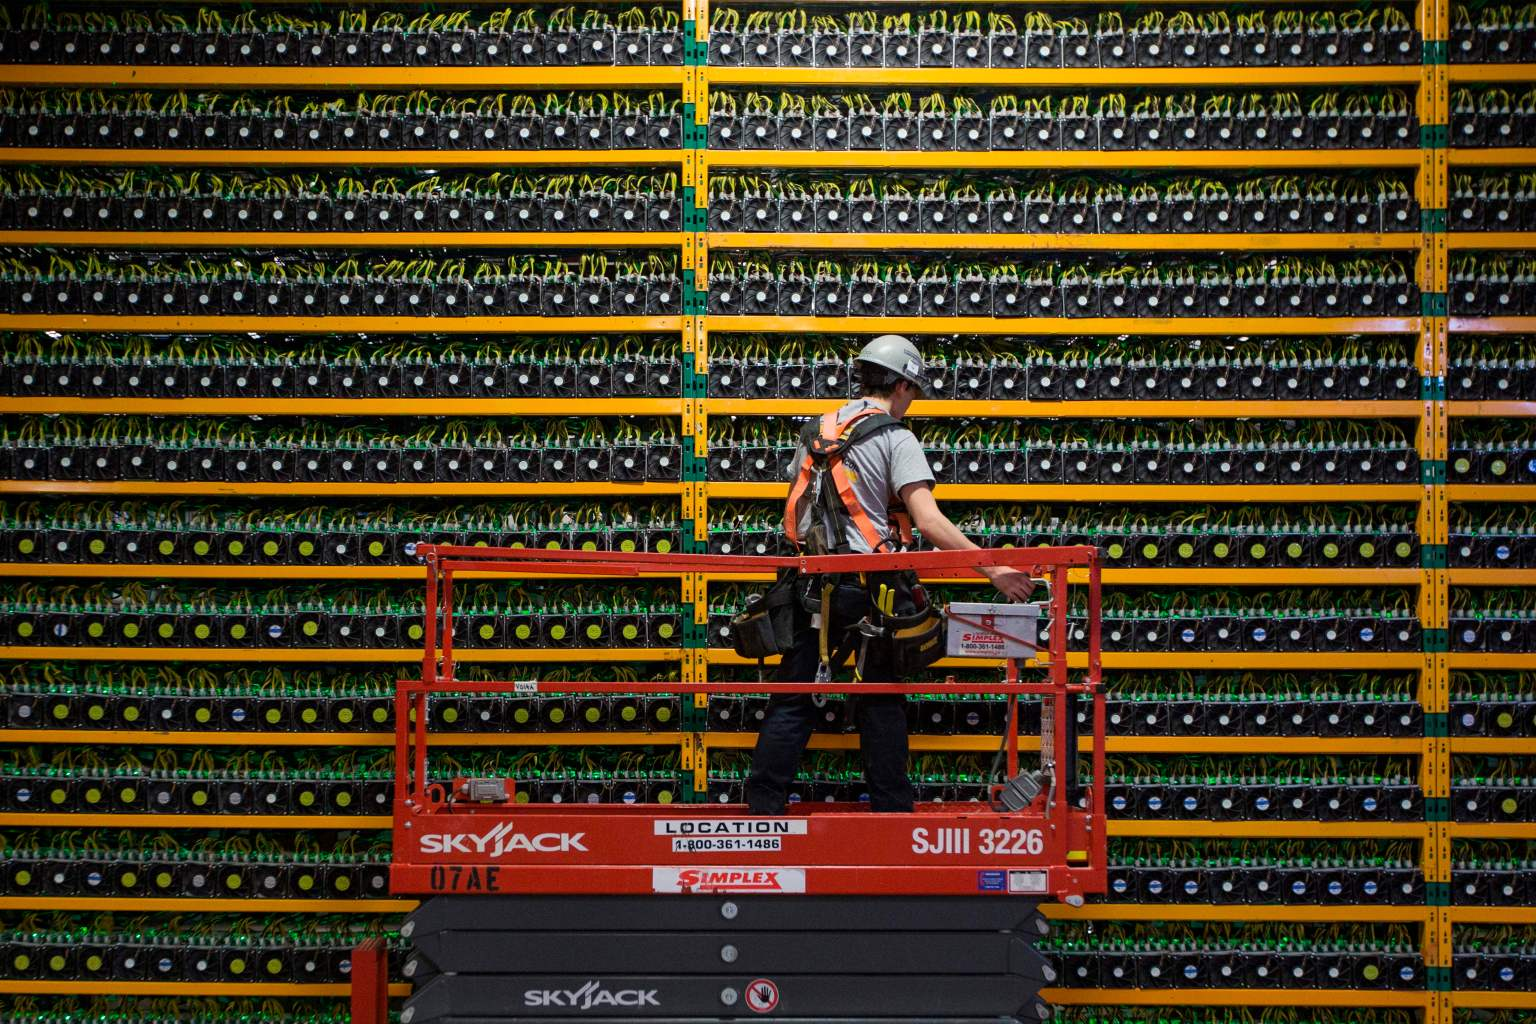 TOPSHOT - A technician inspects the backside of bitcoin mining at Bitfarms in Saint Hyacinthe, Quebec on March 19, 2018. Bitcoin is a cryptocurrency and worldwide payment system. It is the first decentralized digital currency, as the system works based on the blockchain technology without a central bank or single administrator. / AFP PHOTO / Lars Hagberg        (Photo credit should read LARS HAGBERG/AFP/Getty Images)